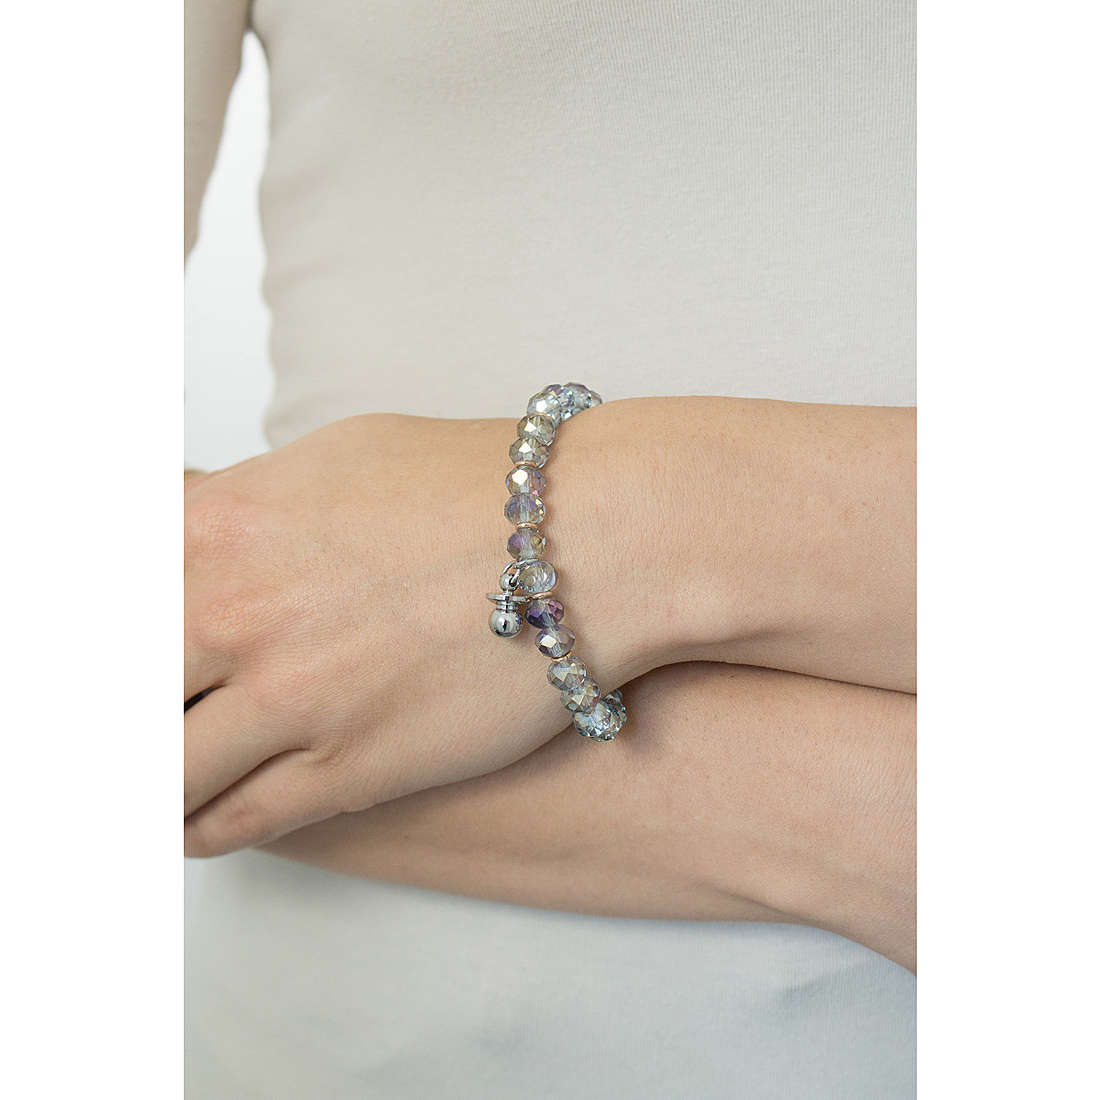 Luca Barra bracelets femme LBBK1252 photo wearing